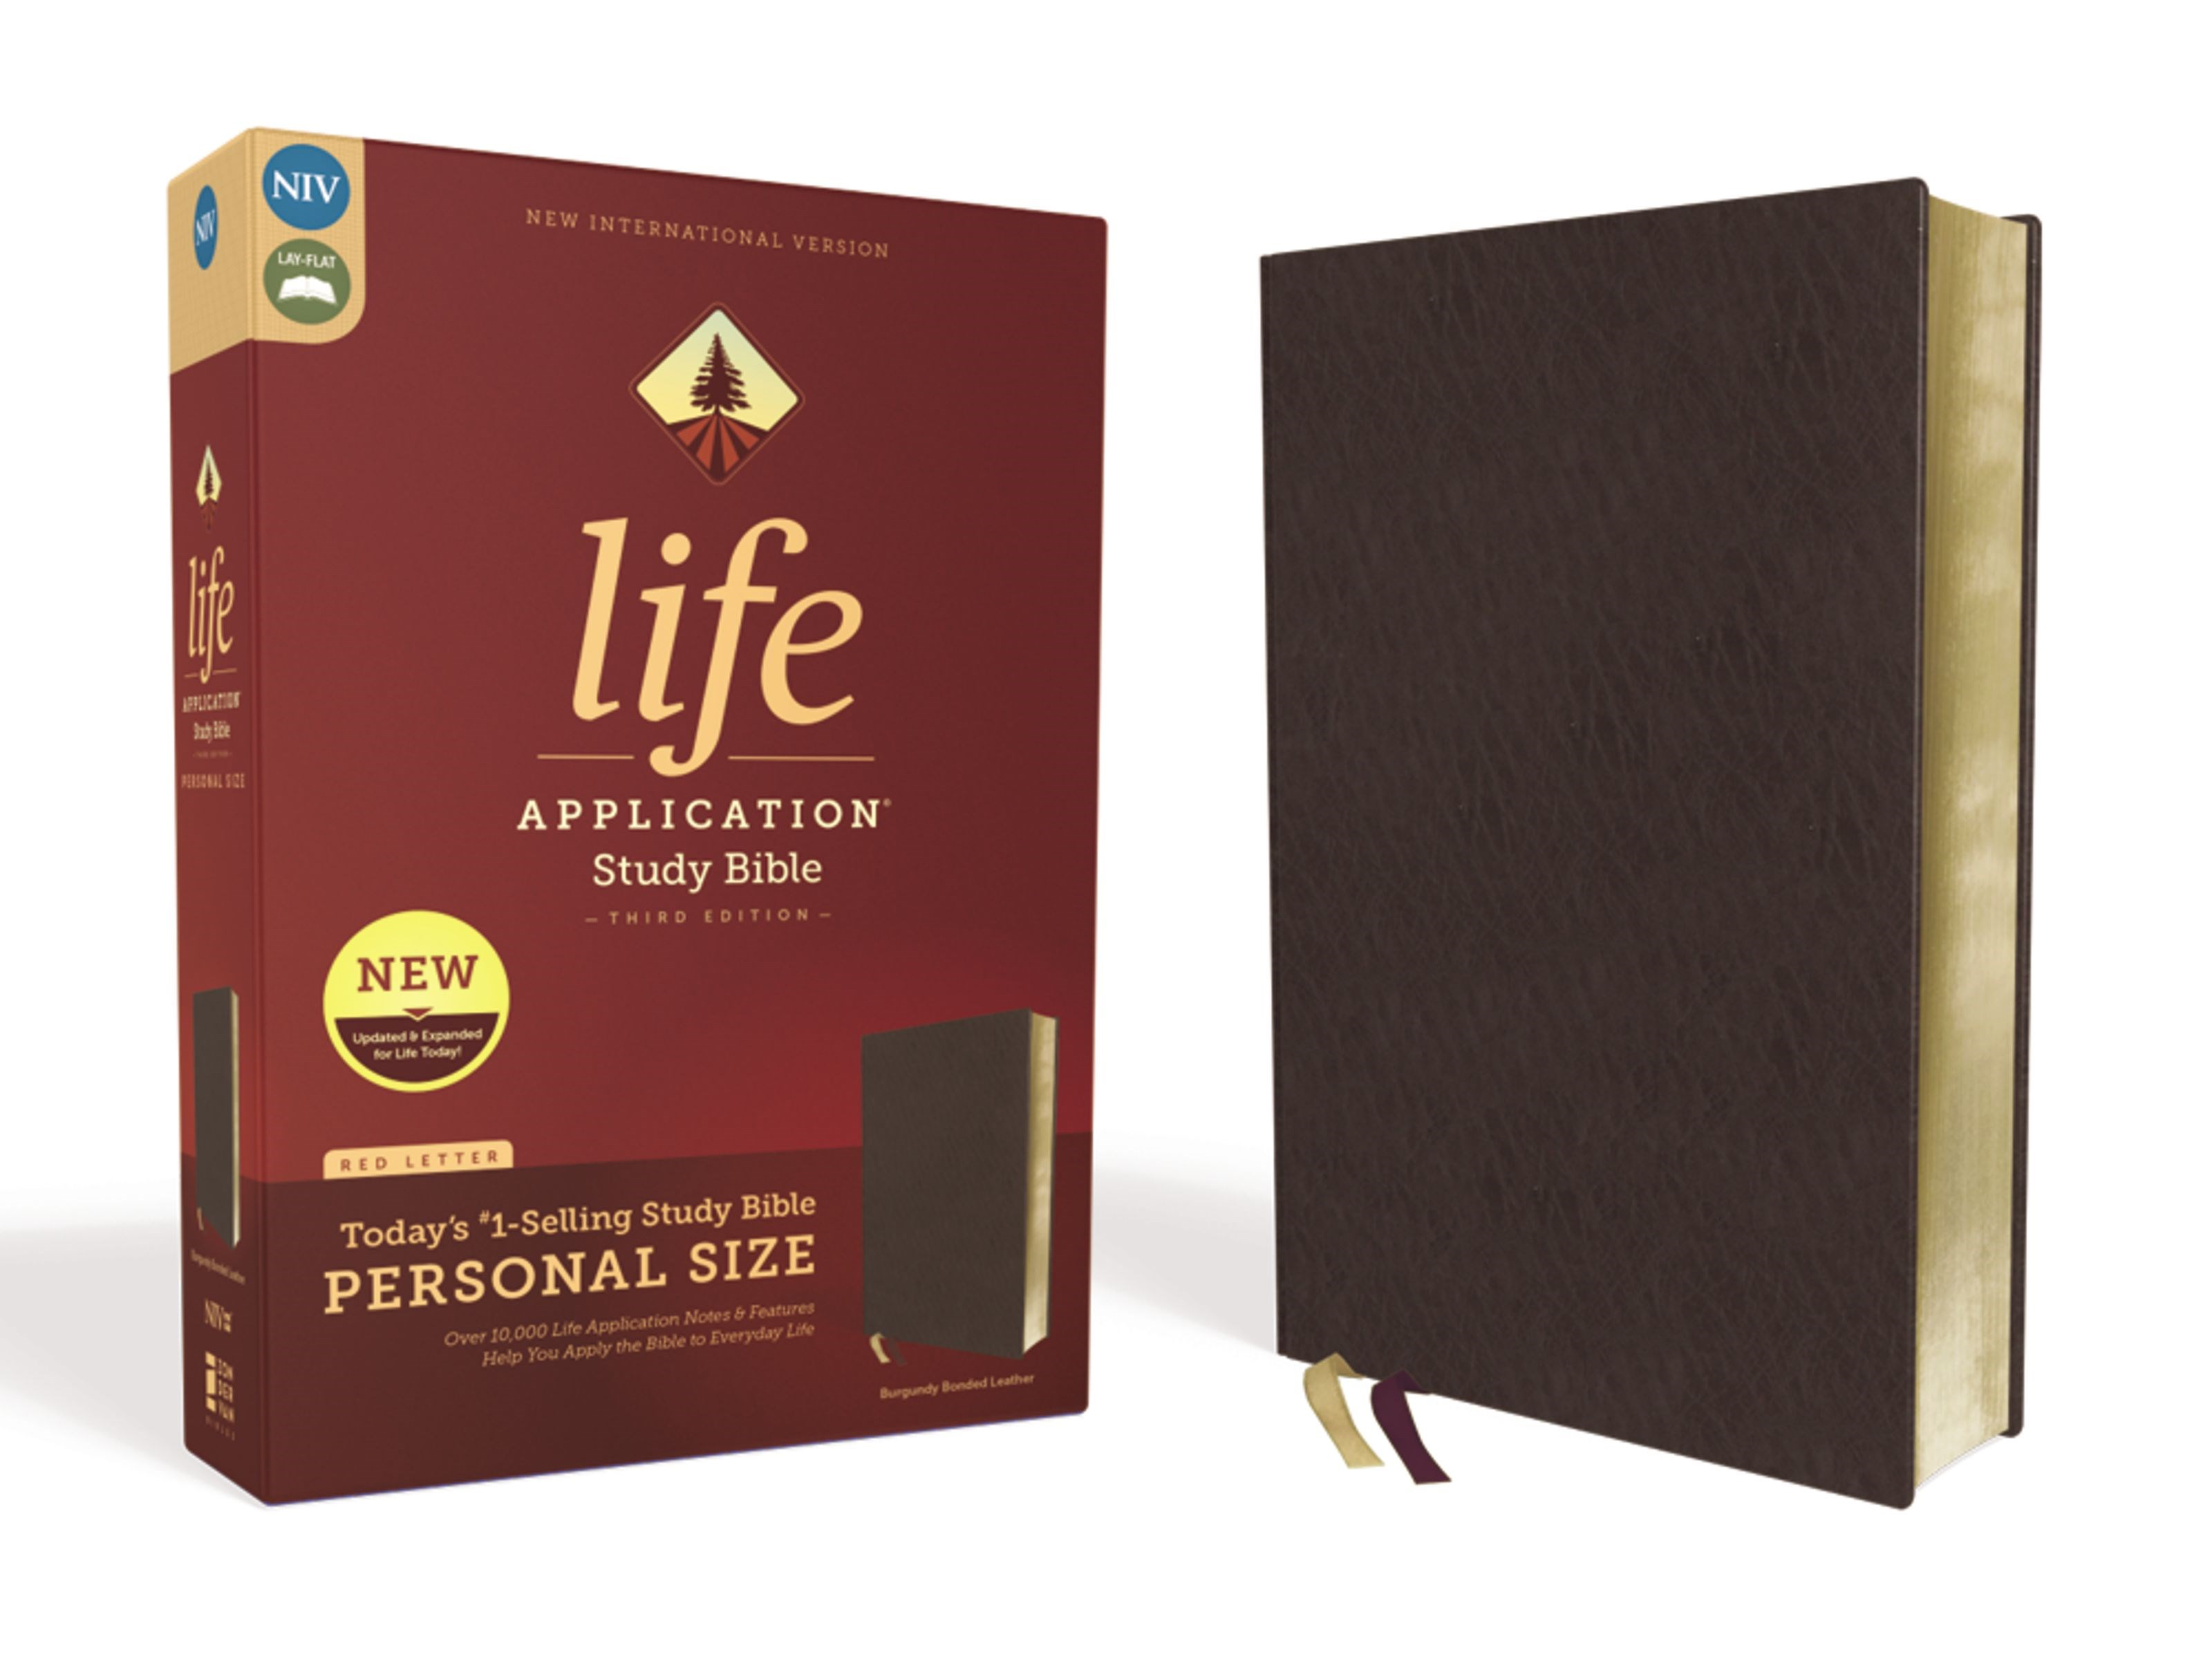 NIV Life Application Study Bible/Personal Size (Third Edition)-Burgundy Bonded Leather